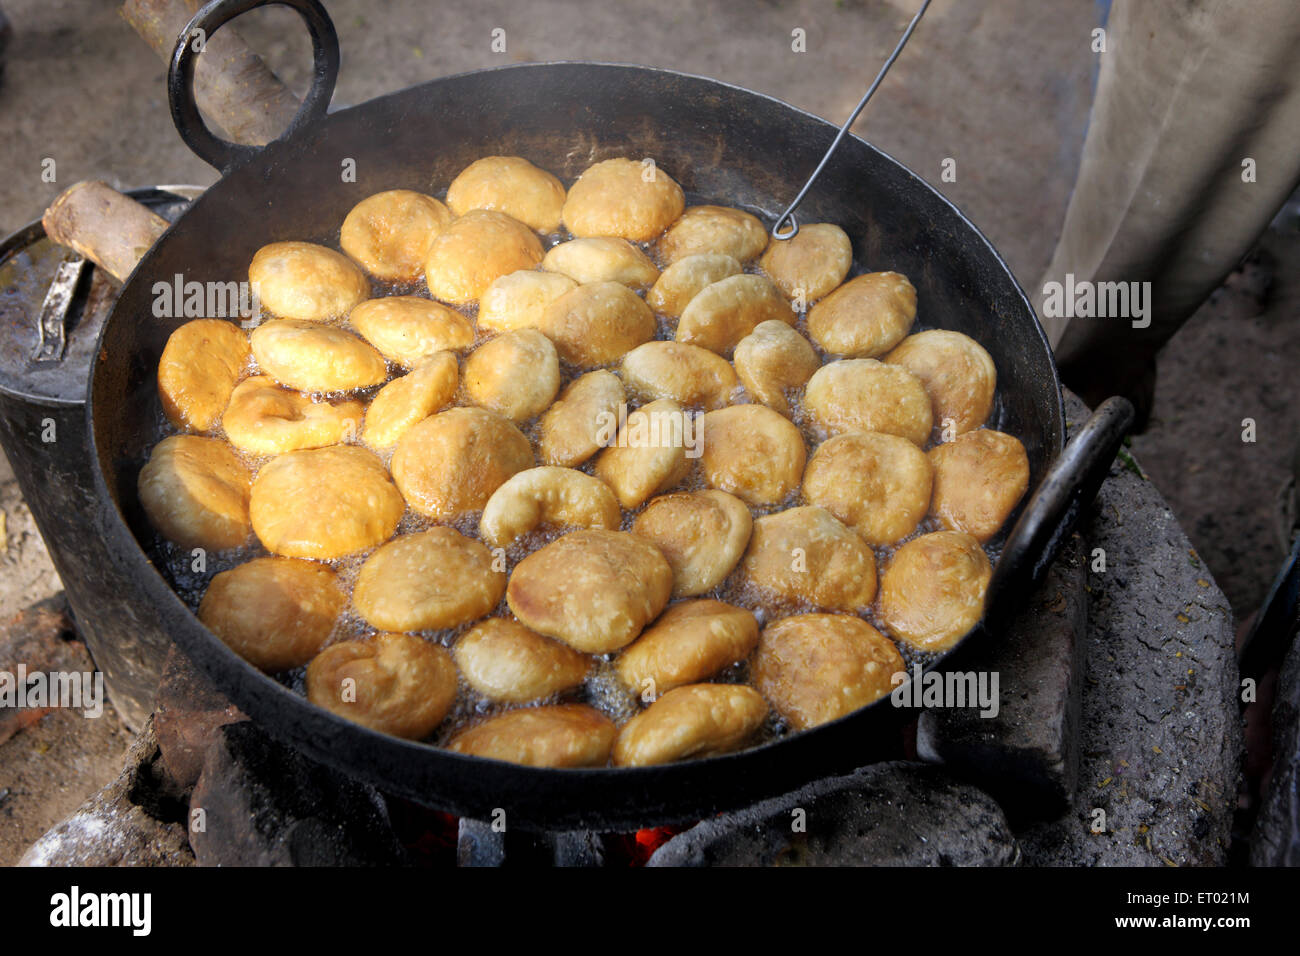 making of Factories in a roadside stall as fast food - Stock Image